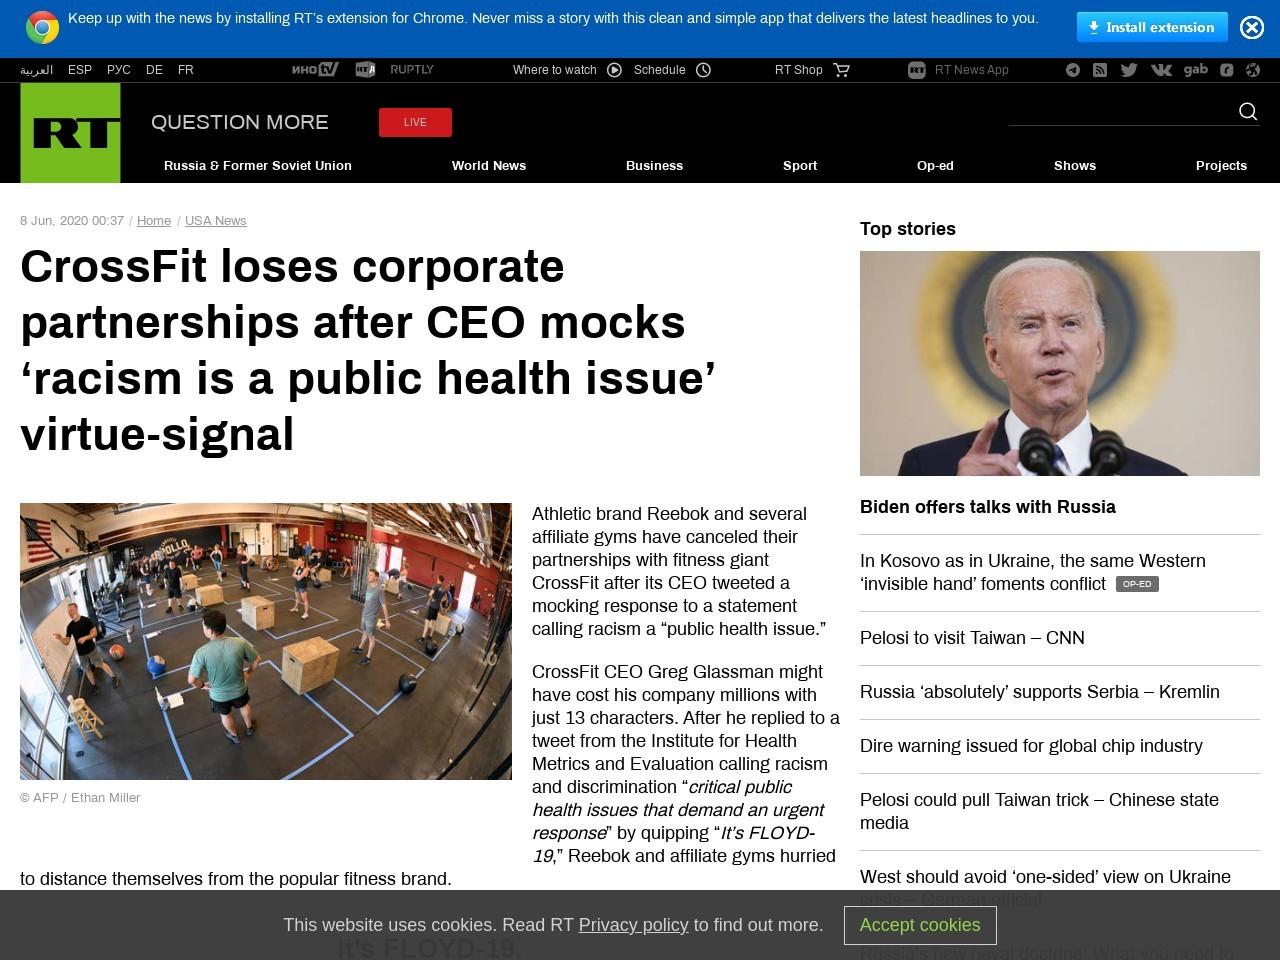 CrossFit loses corporate partnerships after CEO mocks 'racism is a public health issue'…